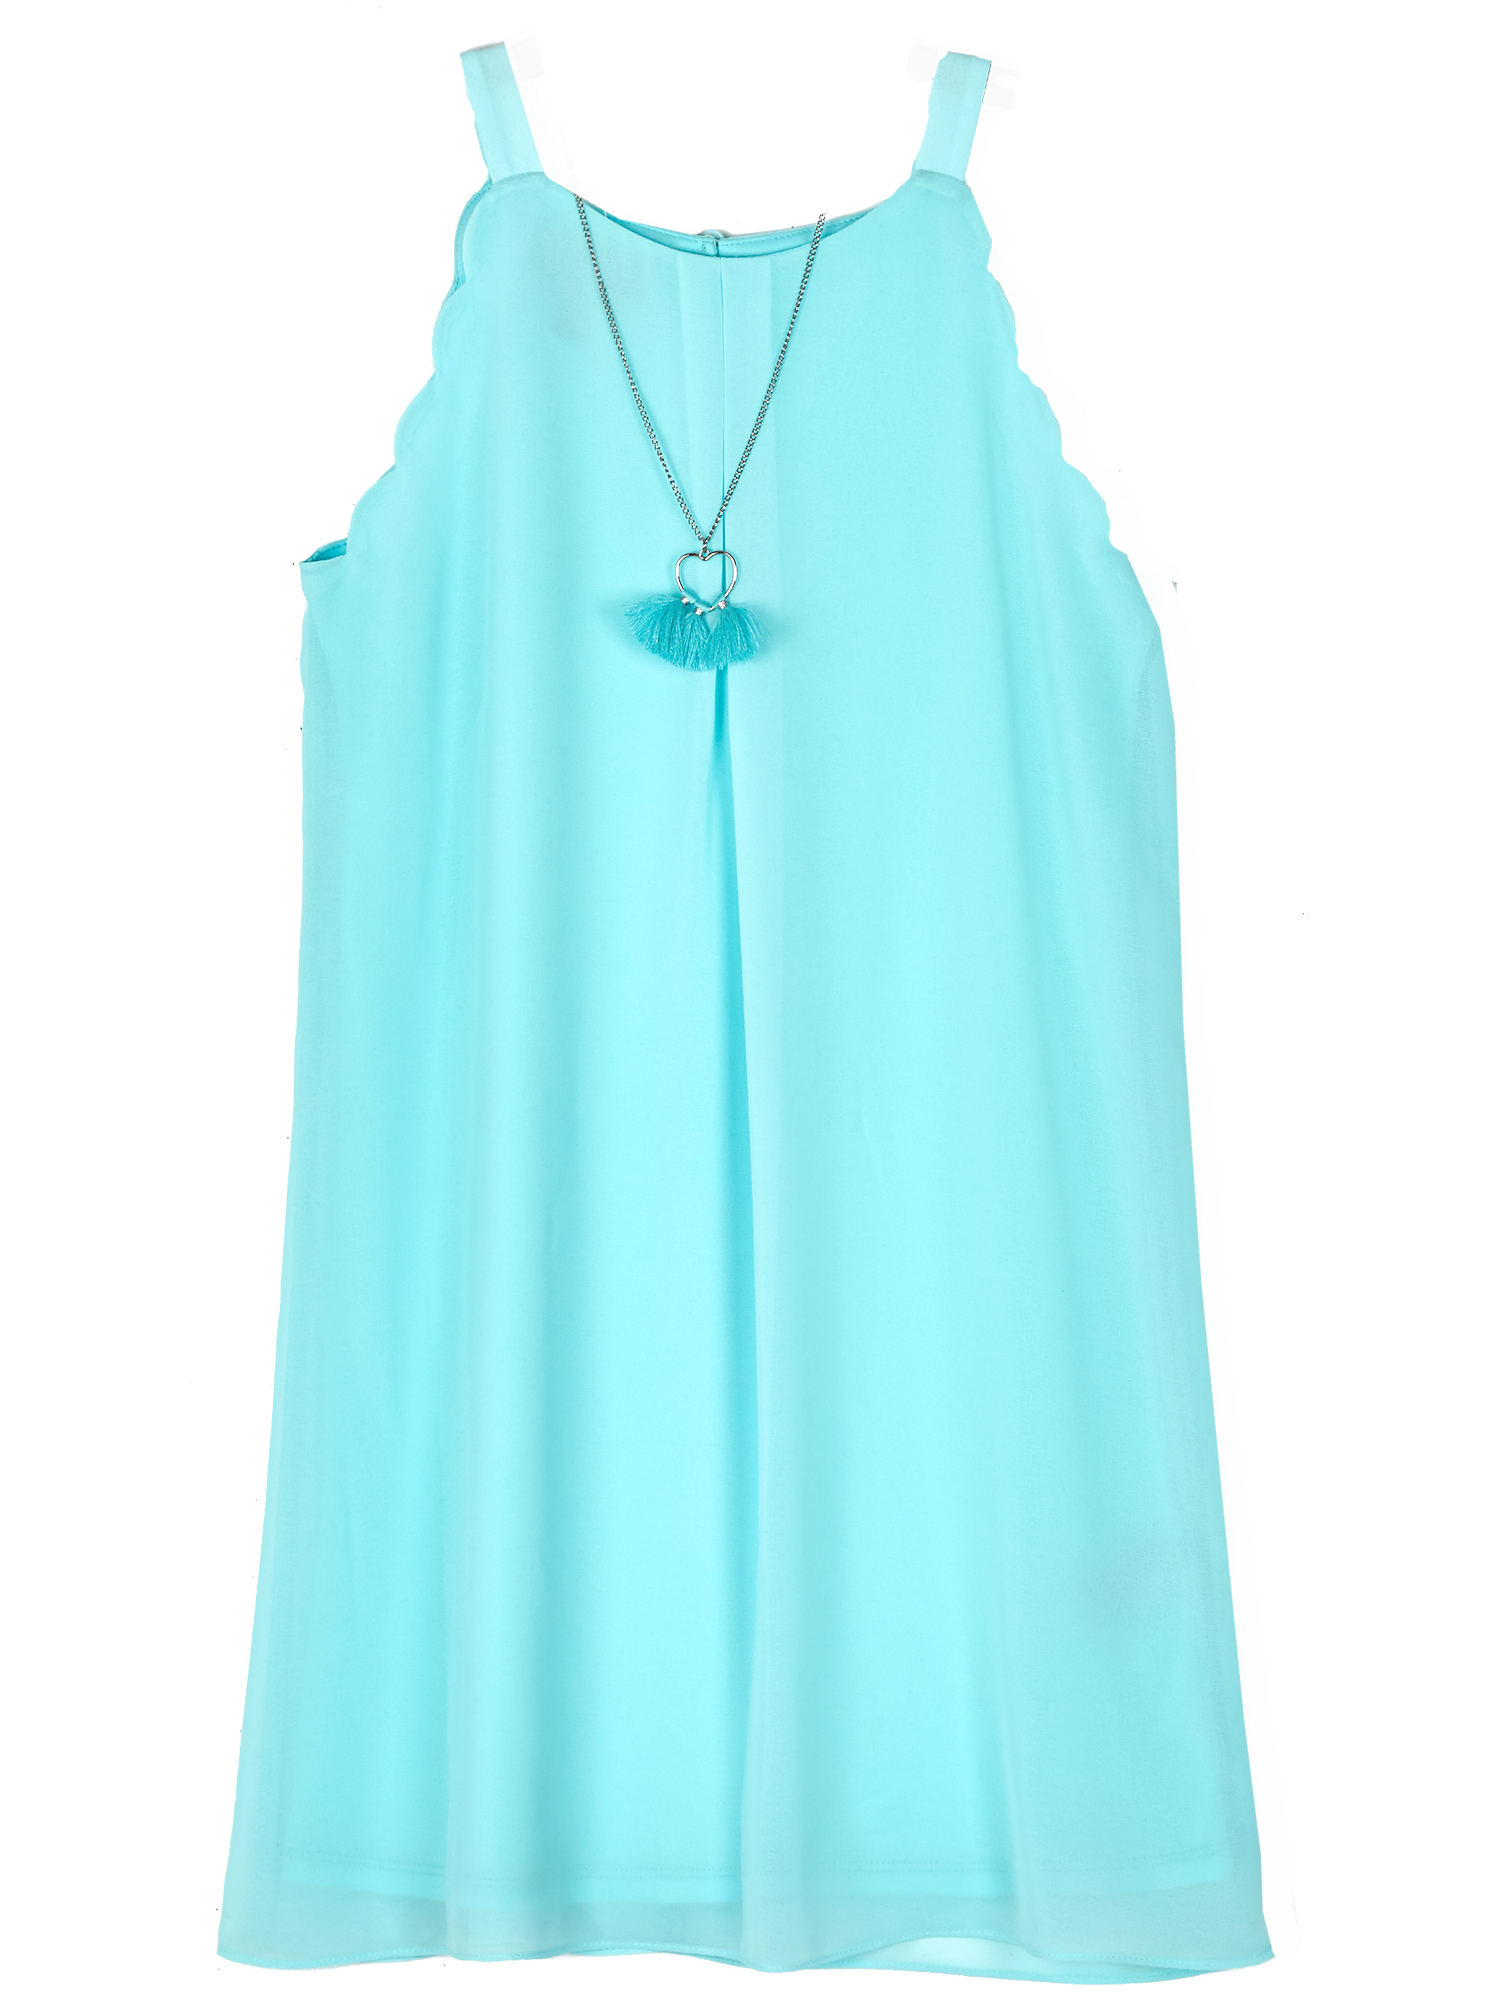 Scallop Edge A-line Dress with Necklace (Big Girls)